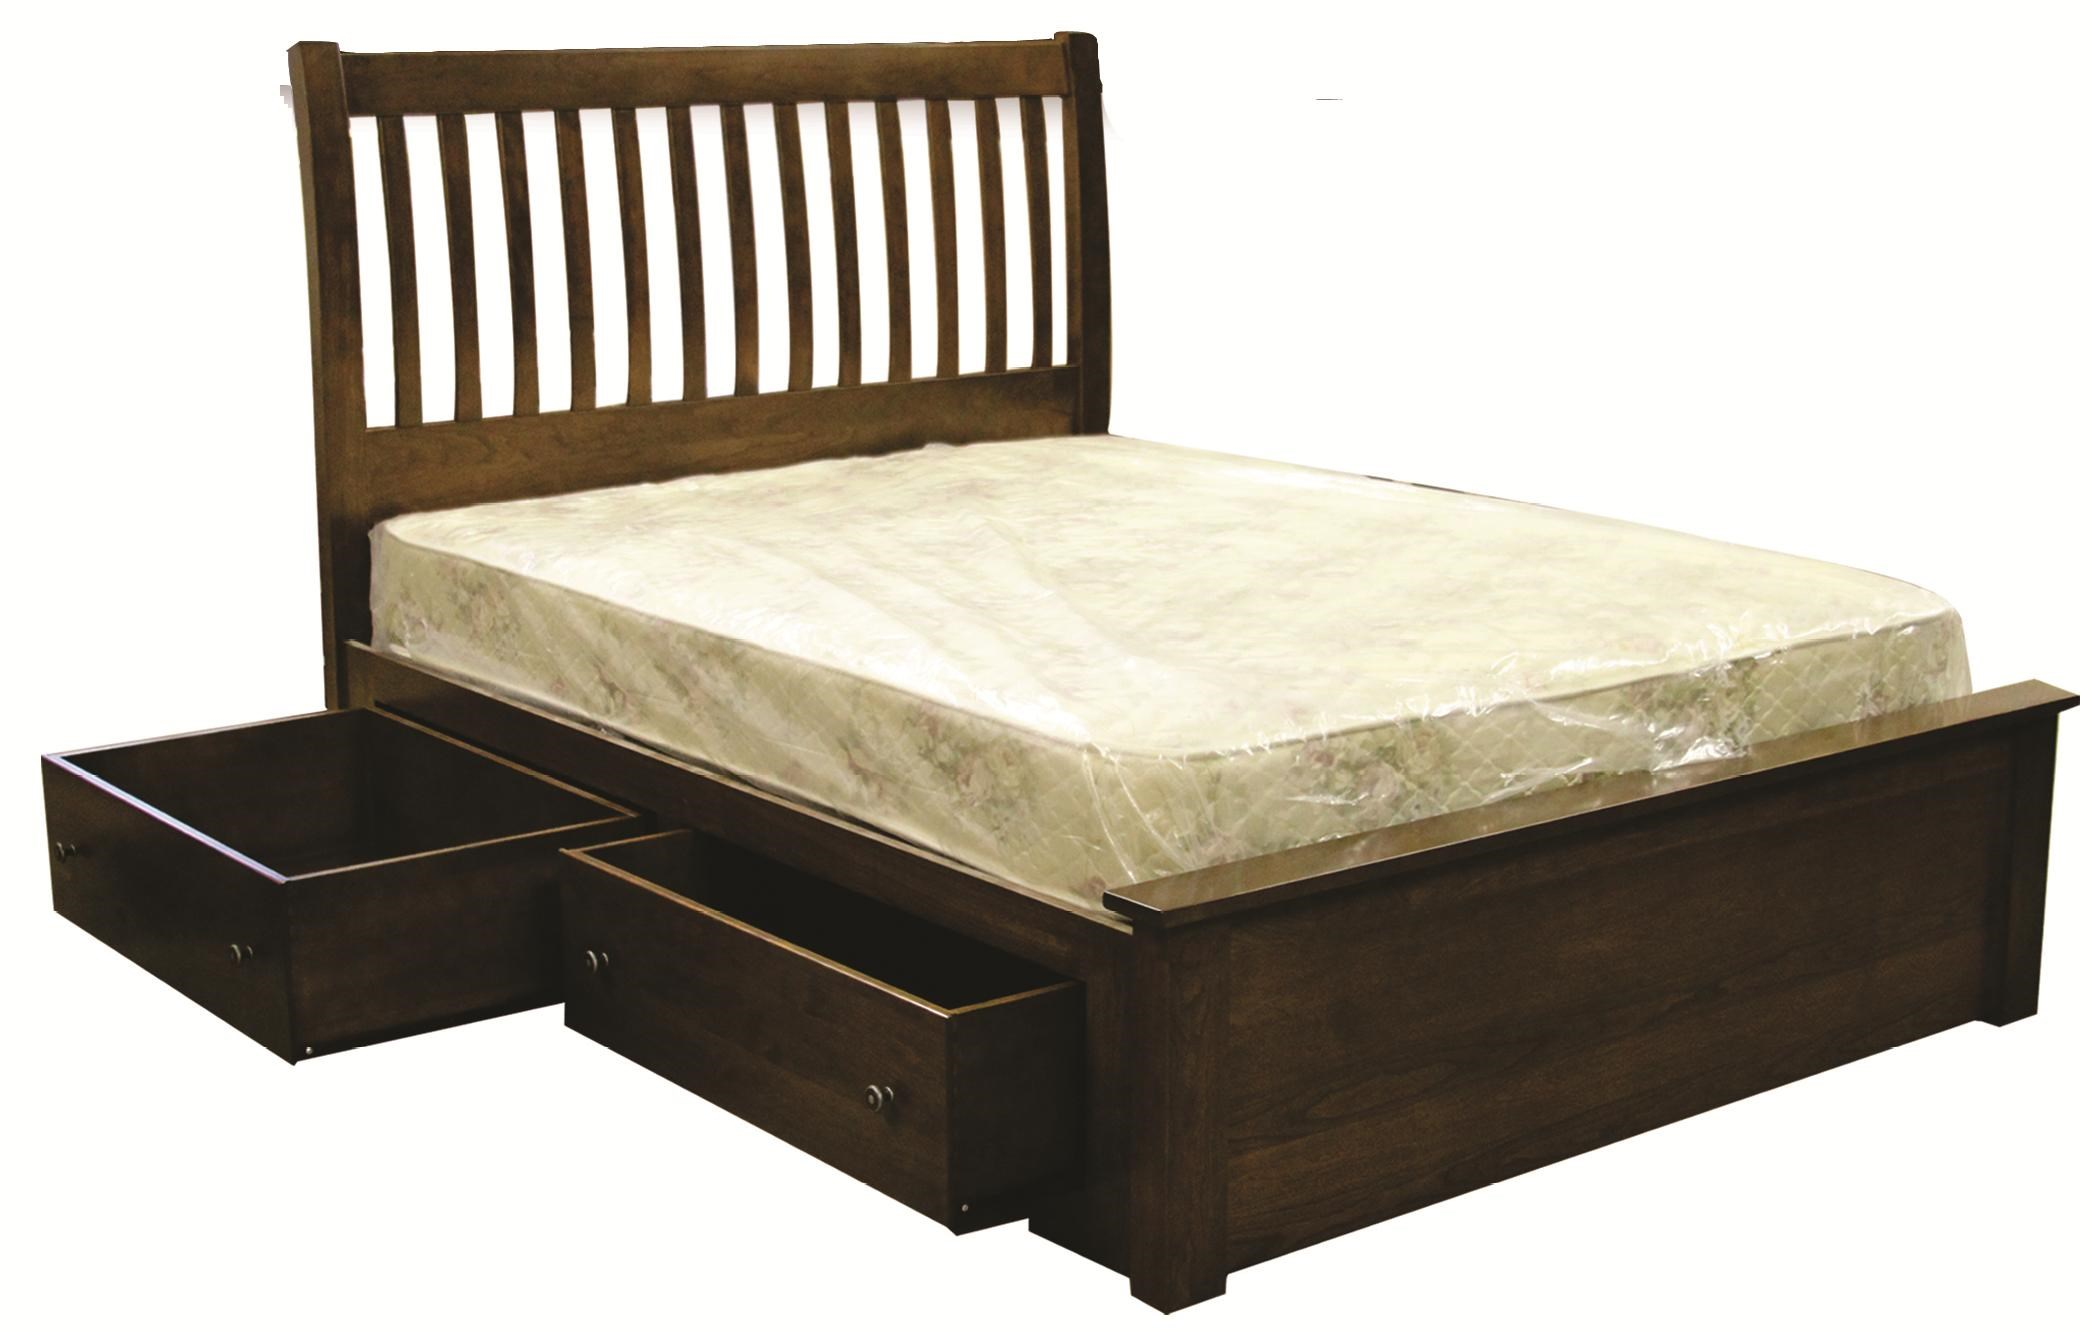 Huntington Bedroom Furniture Rotmans Amish Huntington Shaker King Solid Wood Bed With Slatted